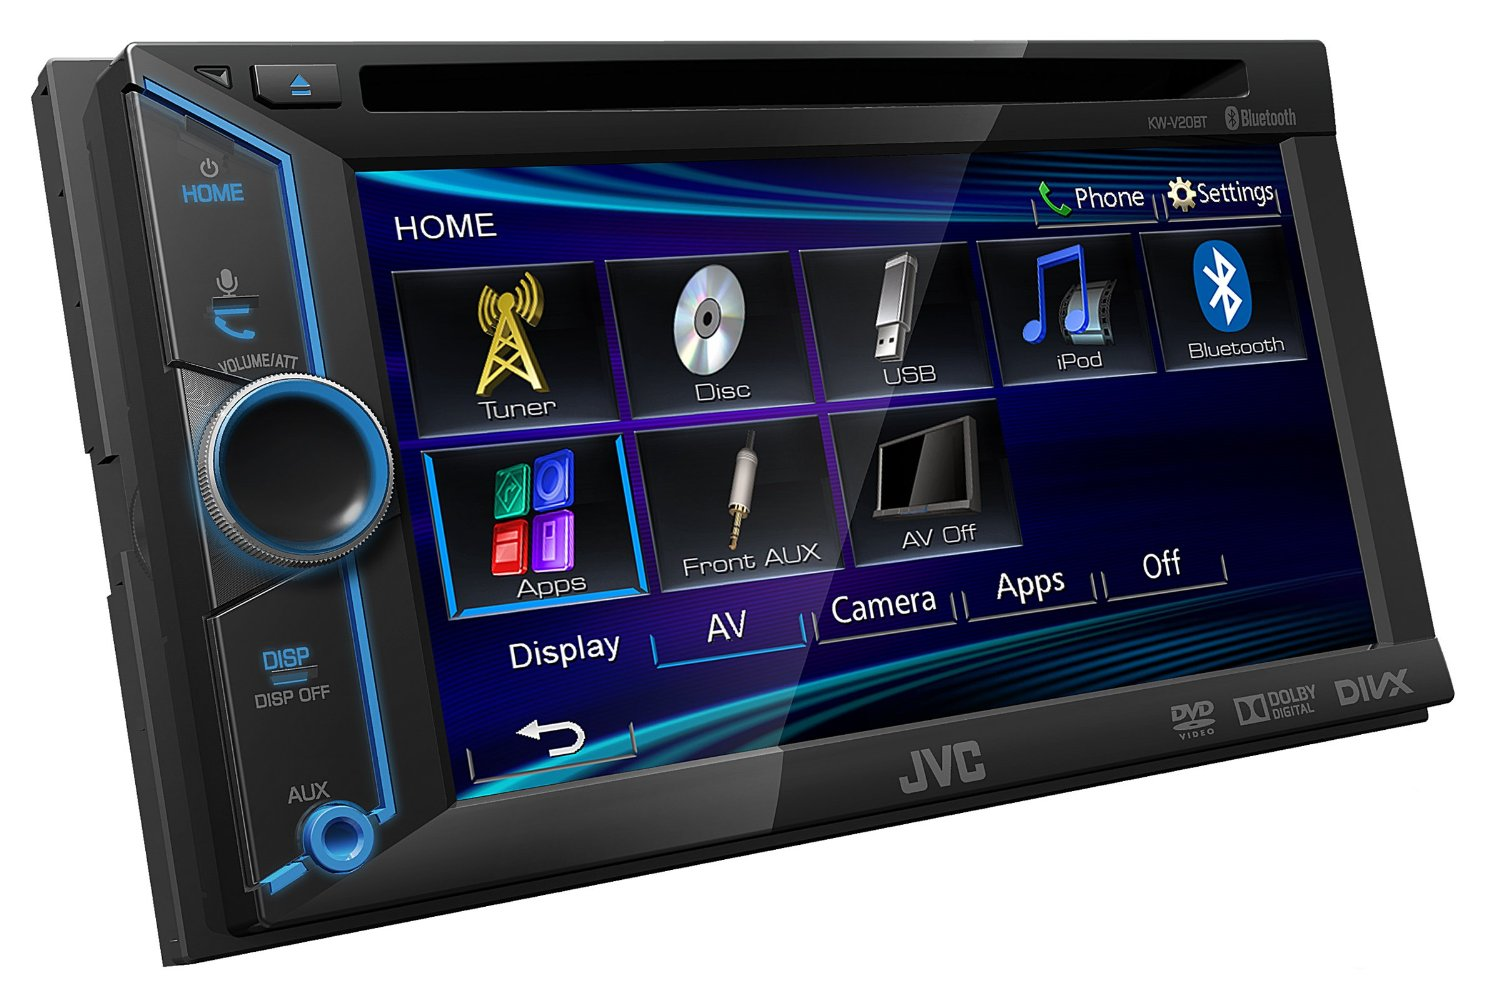 jvc kw v20bte receptor av 2 din dvd cd usb 6 1 bluetooth gps multimedia 2 din. Black Bedroom Furniture Sets. Home Design Ideas